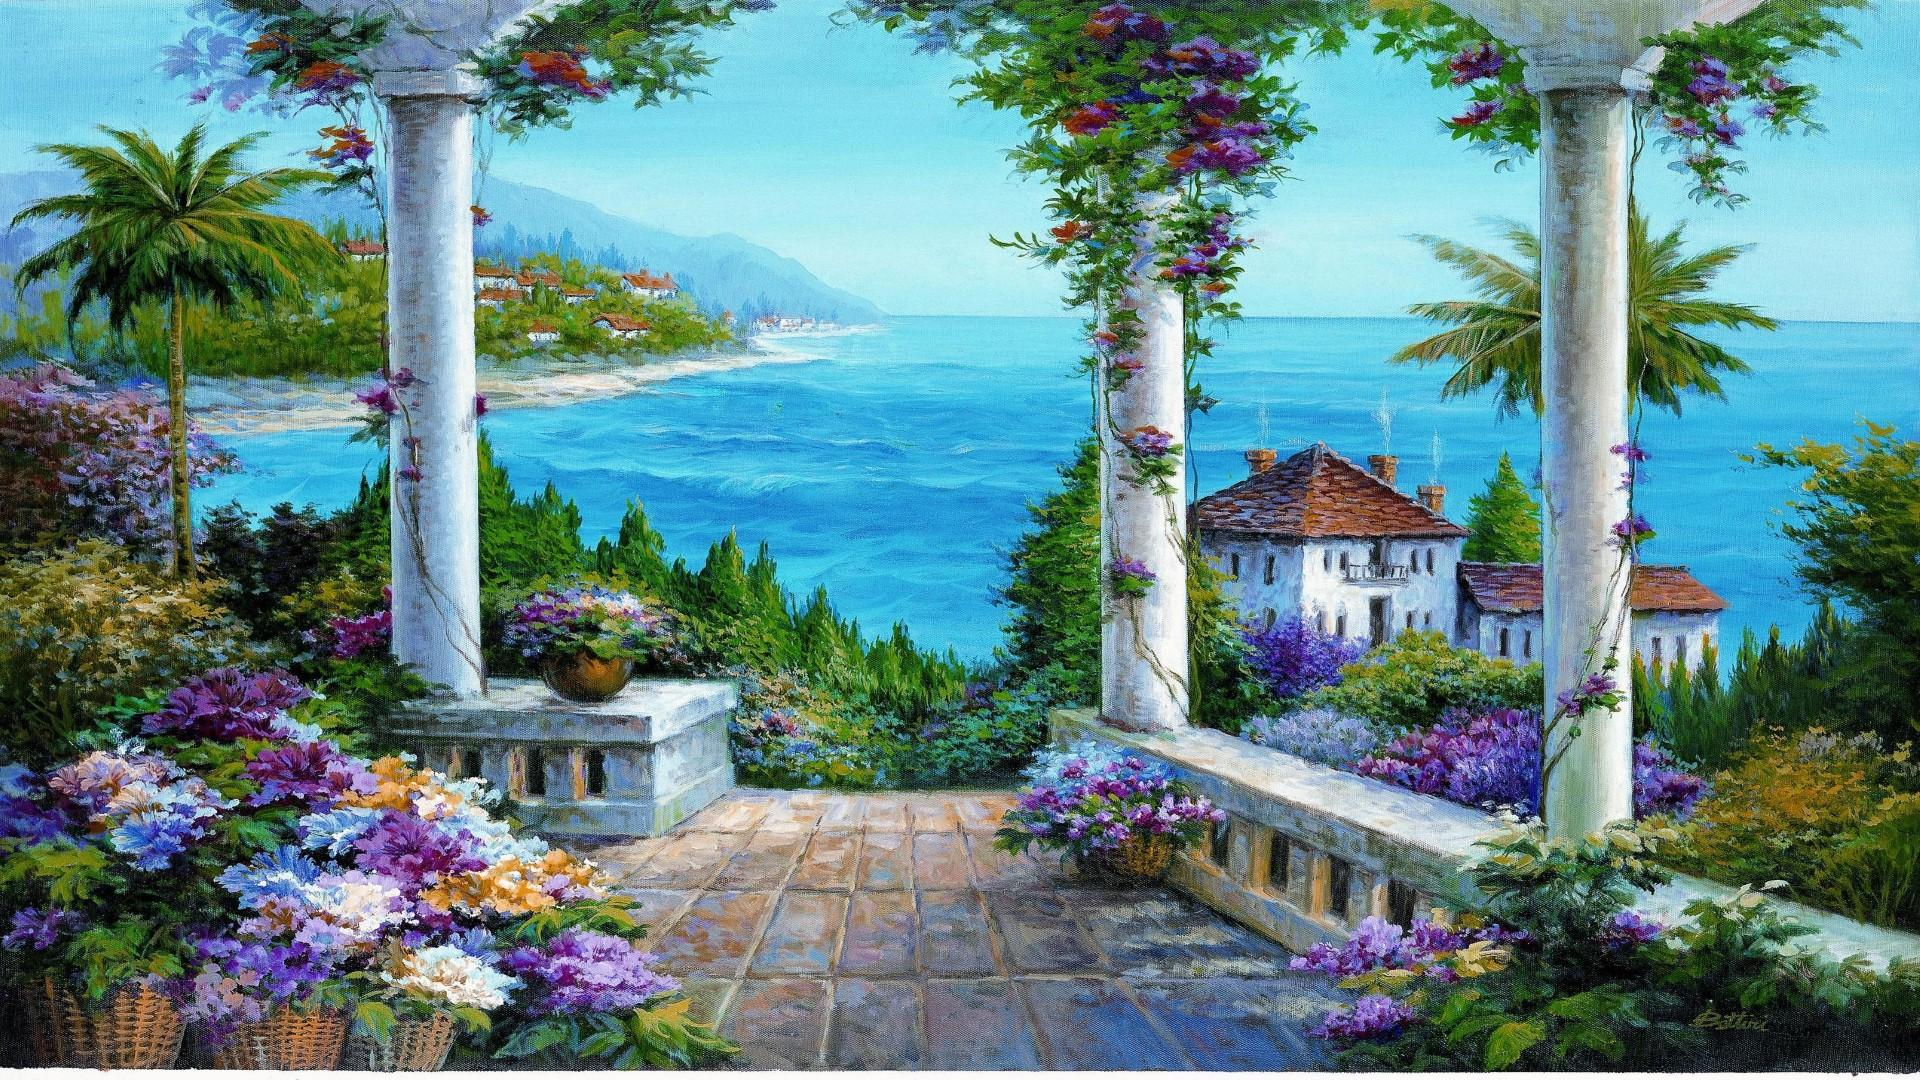 beautiful view wallpaper,property,natural landscape,painting,building,acrylic paint